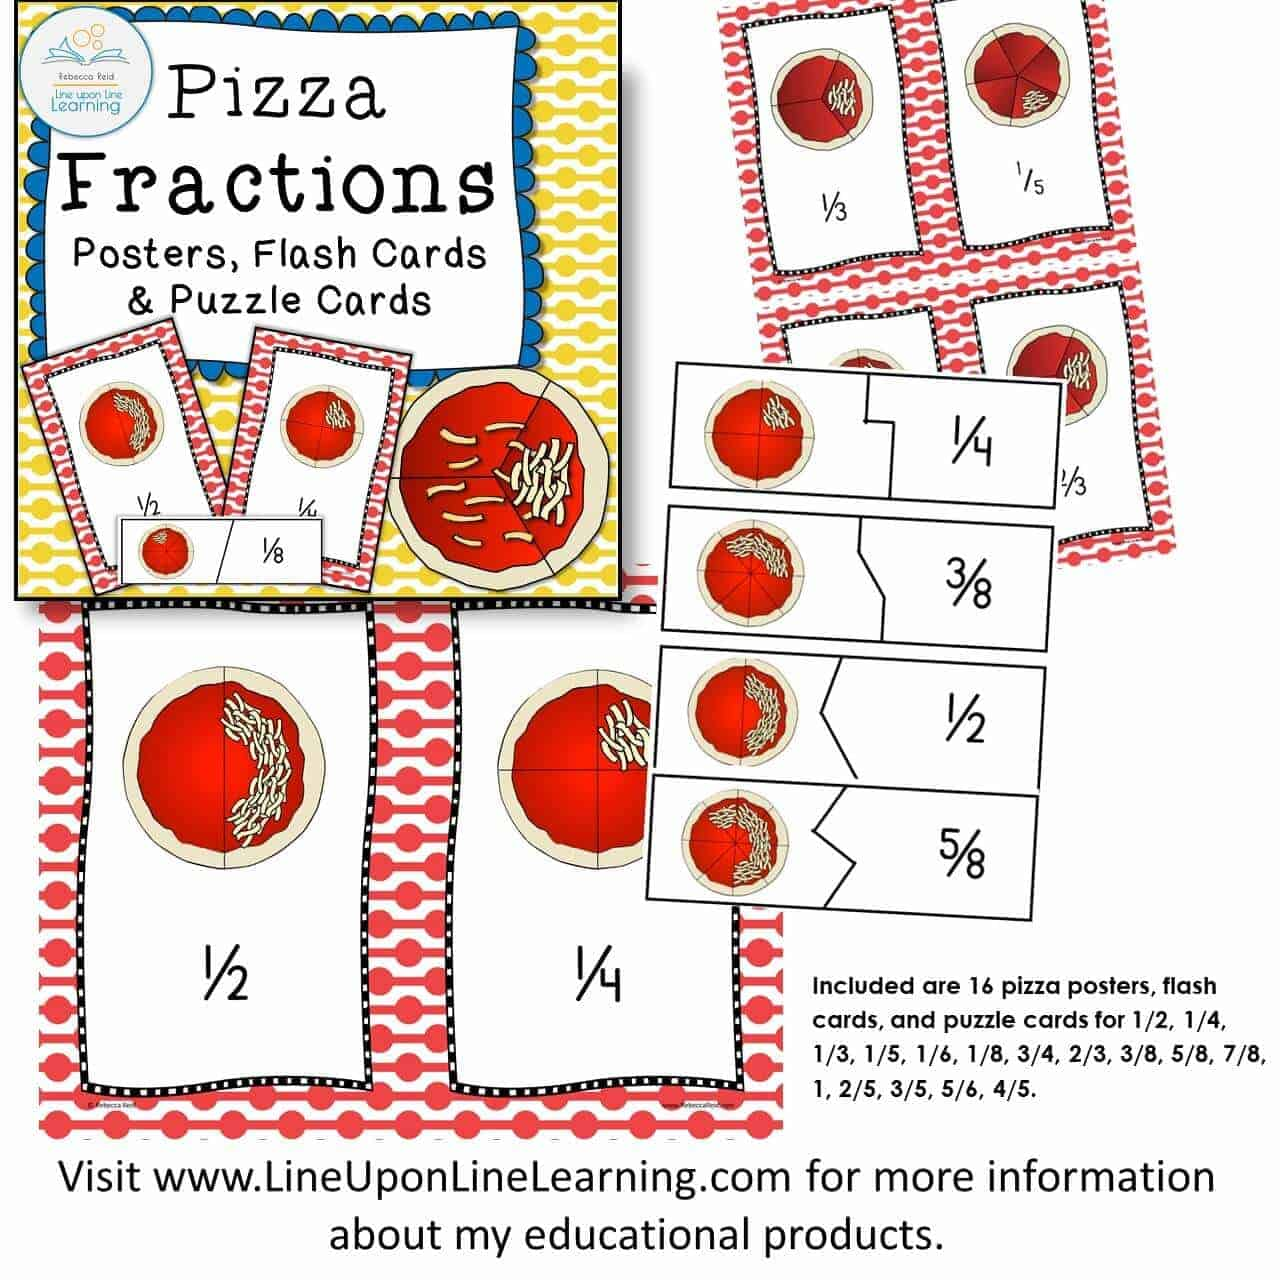 pizza fractions poster puzzle DEMO